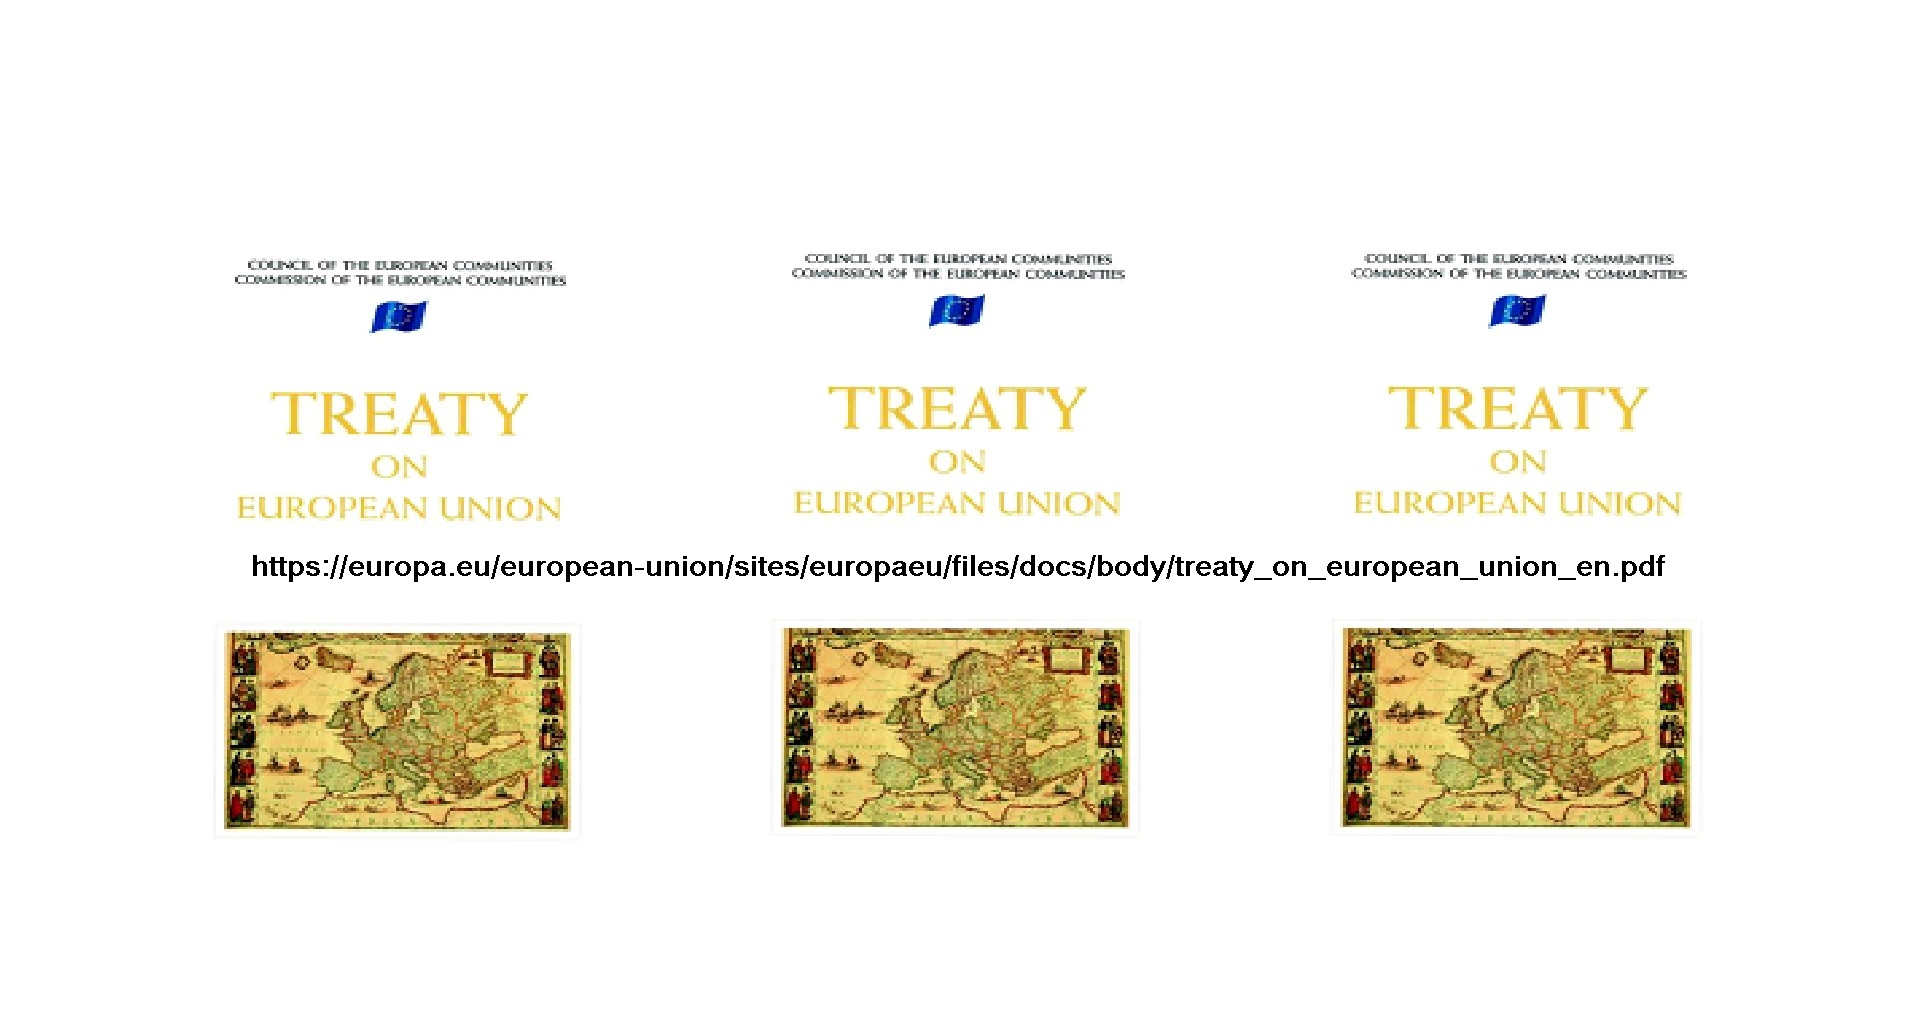 Maastricht Treaty https://europa.eu/european-union/sites/europaeu/files/docs/body/treaty_on_european_union_en.pdf